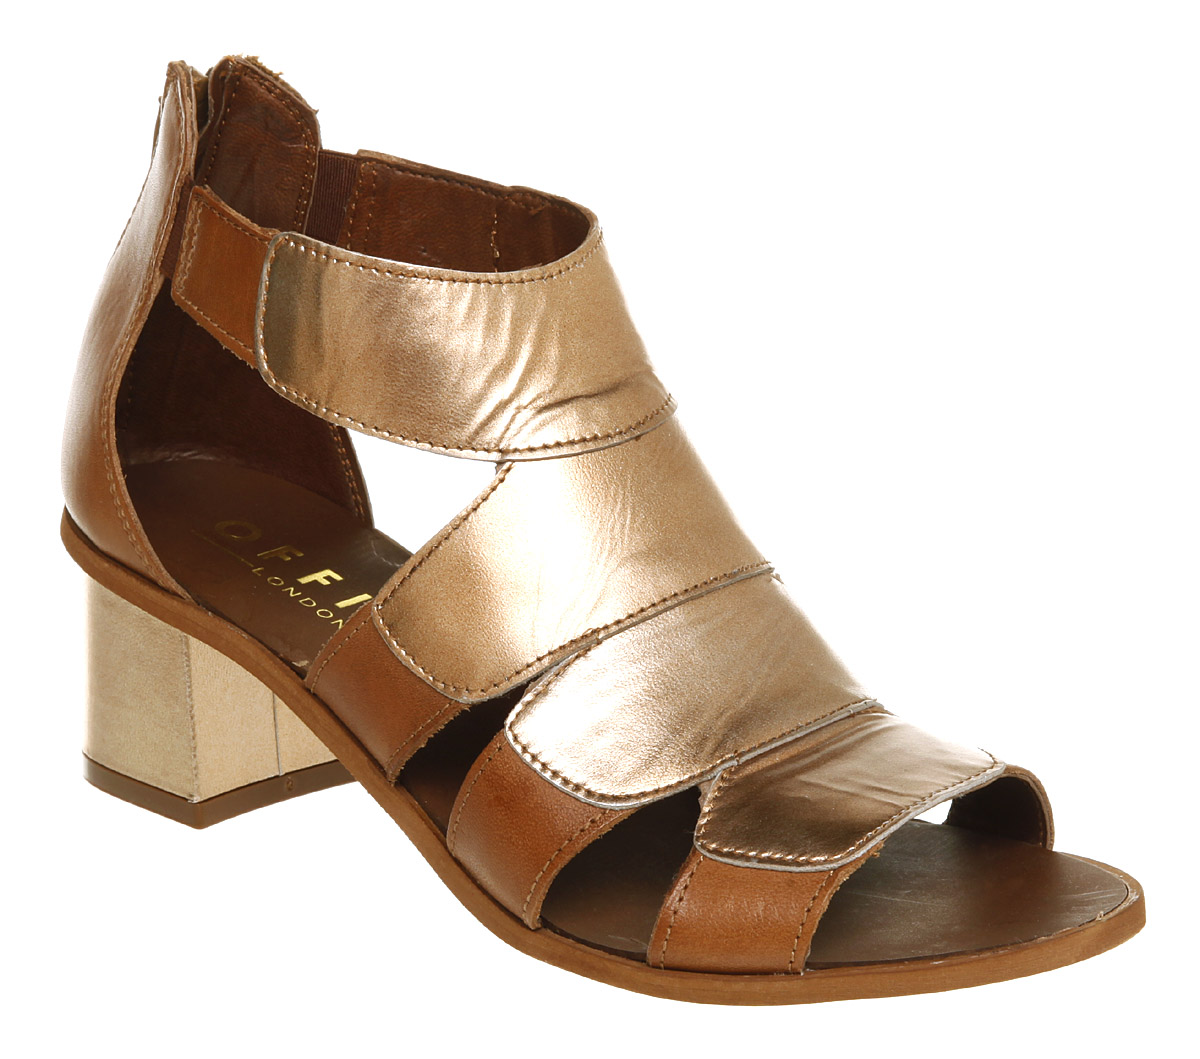 Womens-Office-How-Now-Sandal-Tan-gold-Lthr-Heels